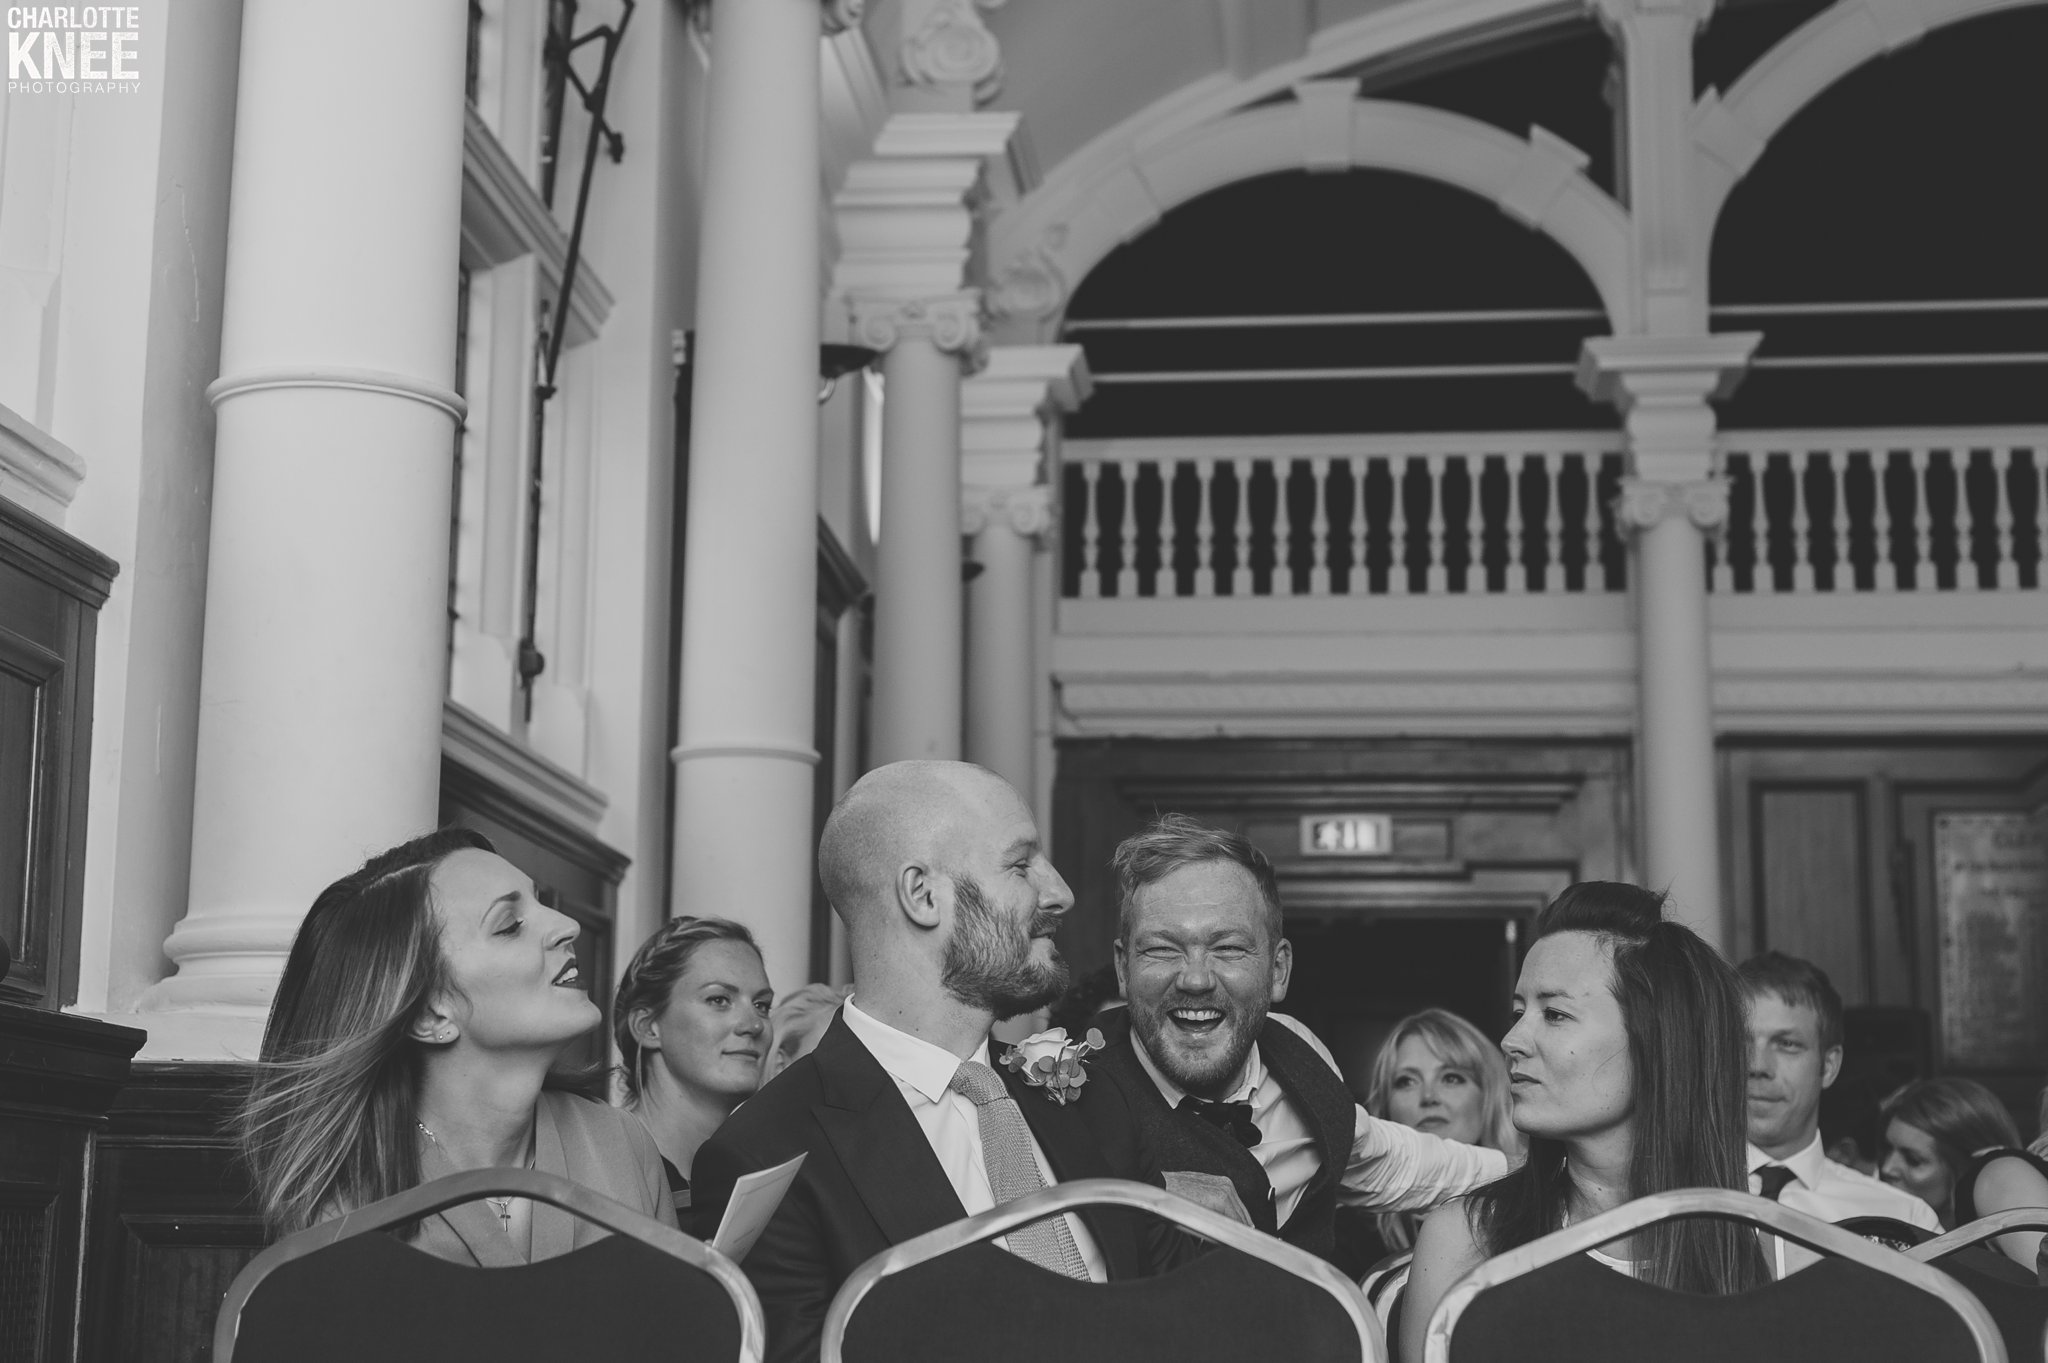 London Wedding Finsbury Town Hall Copyright Charlotte Knee Photography_0064.jpg